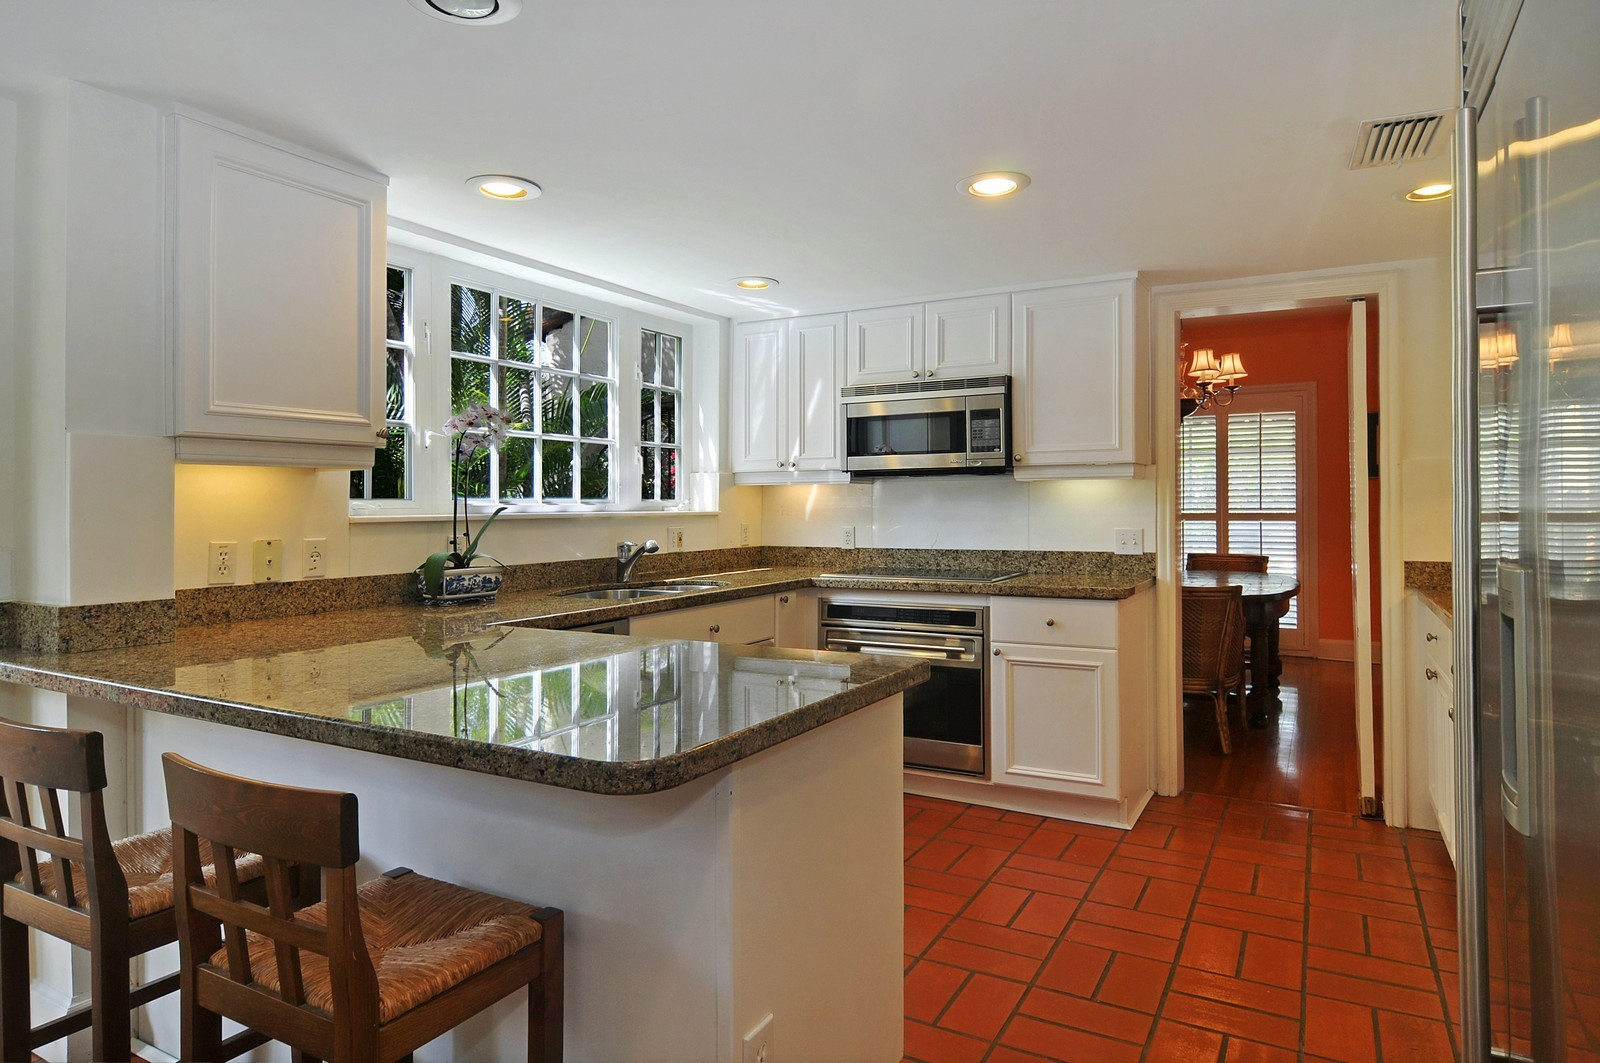 Real Estate Photography - 536 Alhambra, Coral Gables, FL, 33134 - Kitchen